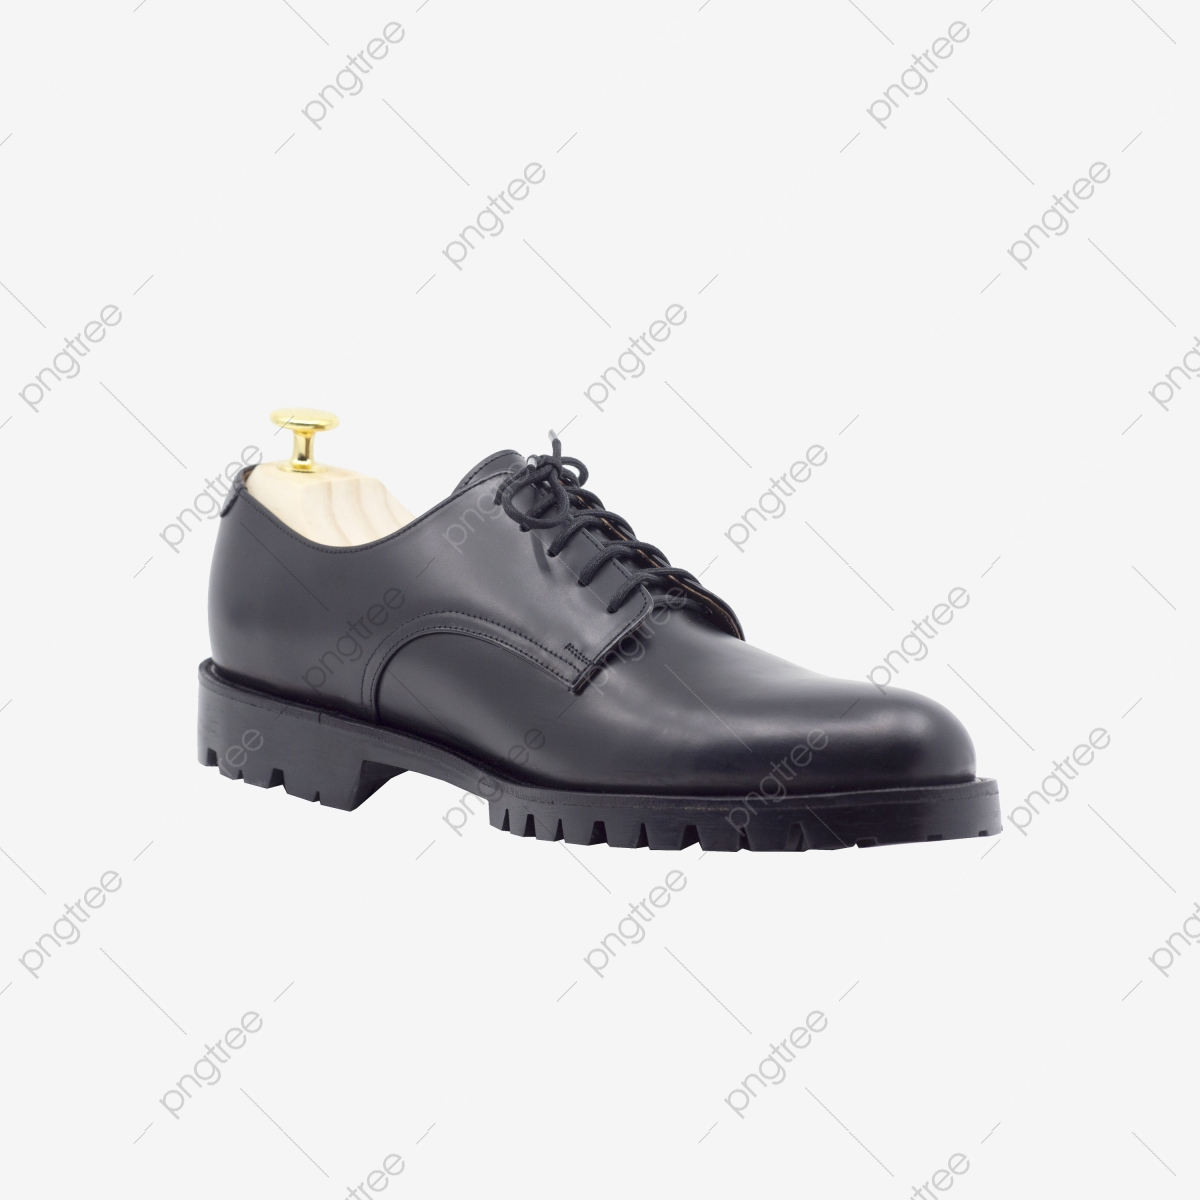 Classic Male Black Leather Shoes Isolated On White